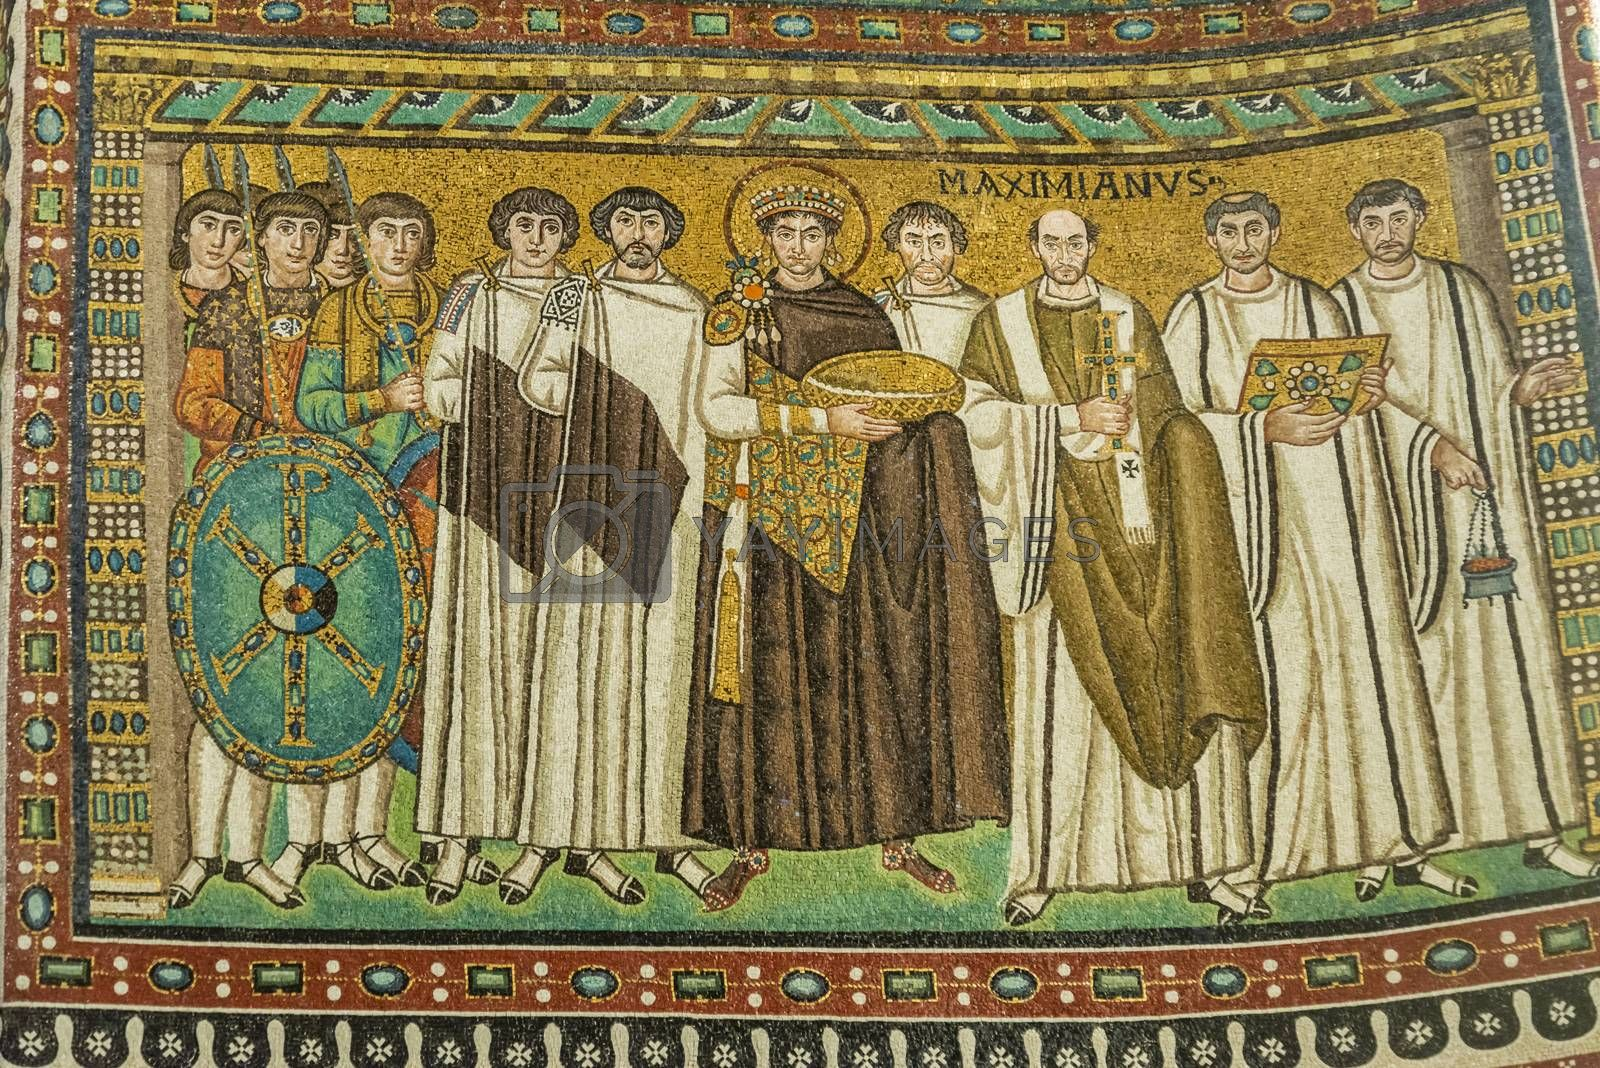 mosaic inside the famous Basilica di San Vitale, one of the most important examples of early Christian Byzantine art in western Europe, in Ravenna, region of Emilia-Romagna, Italy